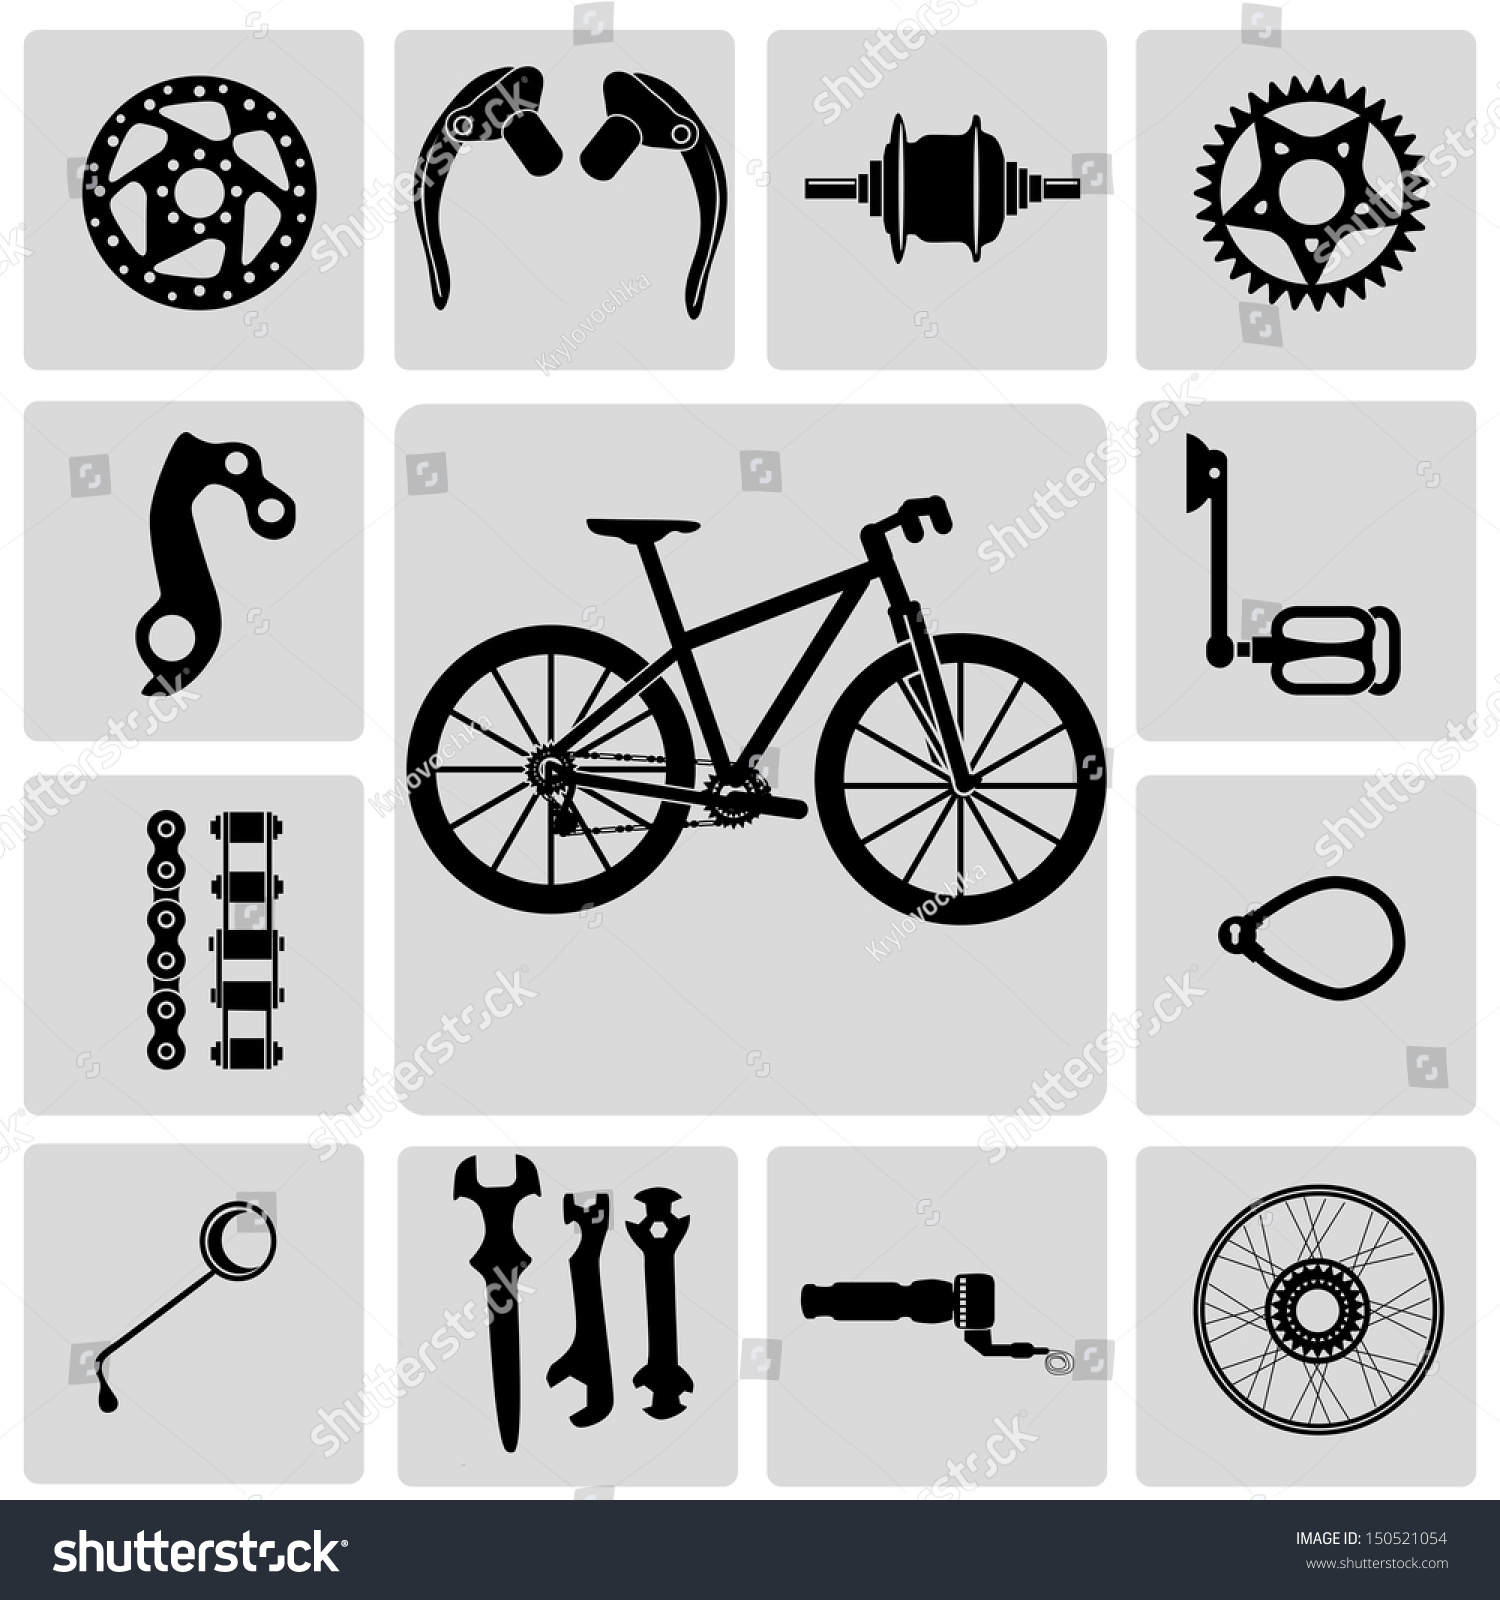 Mountain Bike Info Graphic Elements Spare Stock Vector 150521054